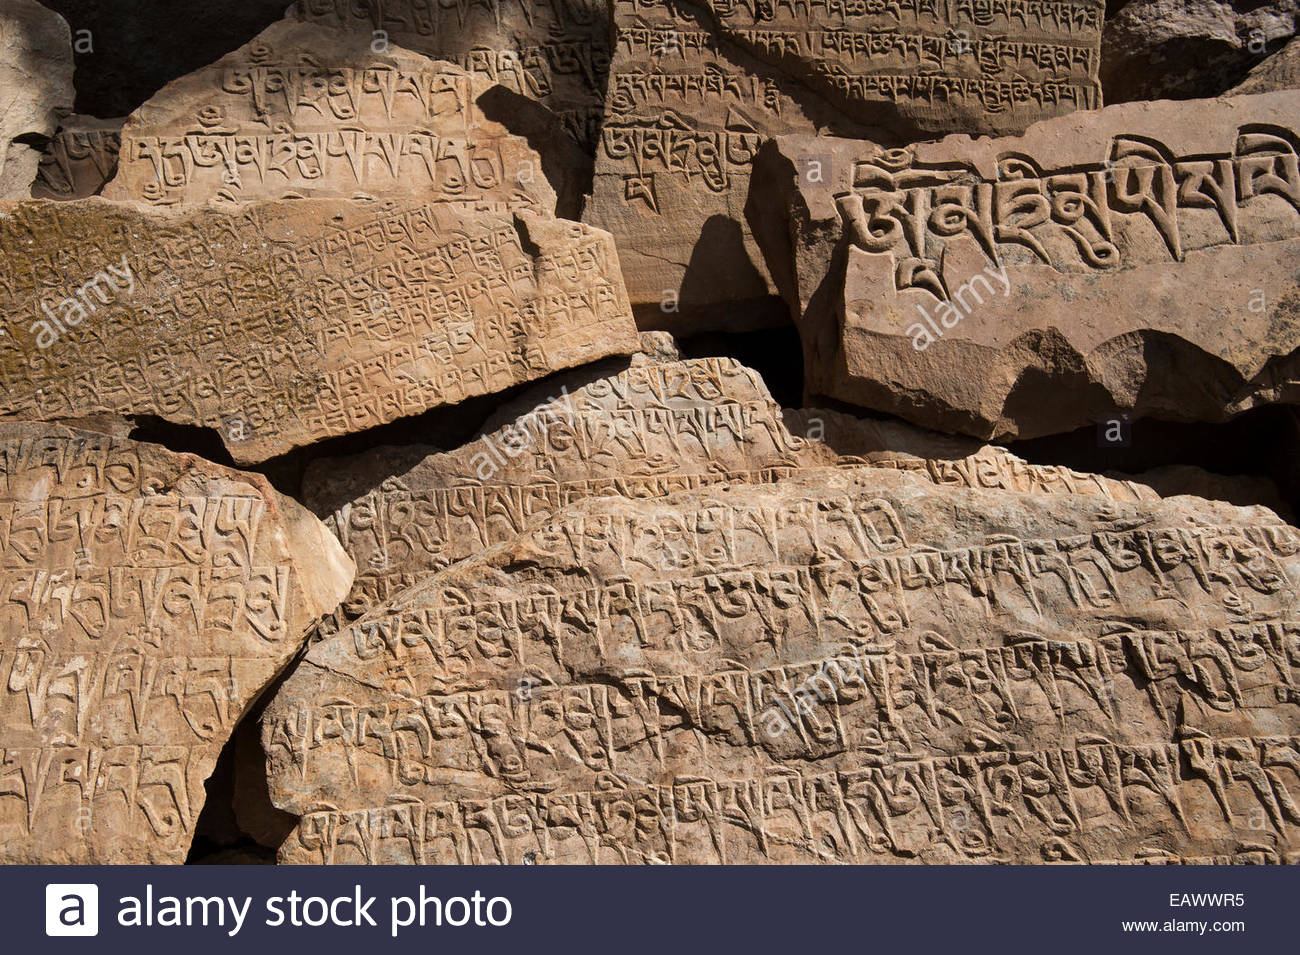 Mani stones inscribed with a Tibetan mantra beside the trail near Ringmo in Dolpa, a remote region of Nepal - Stock Image